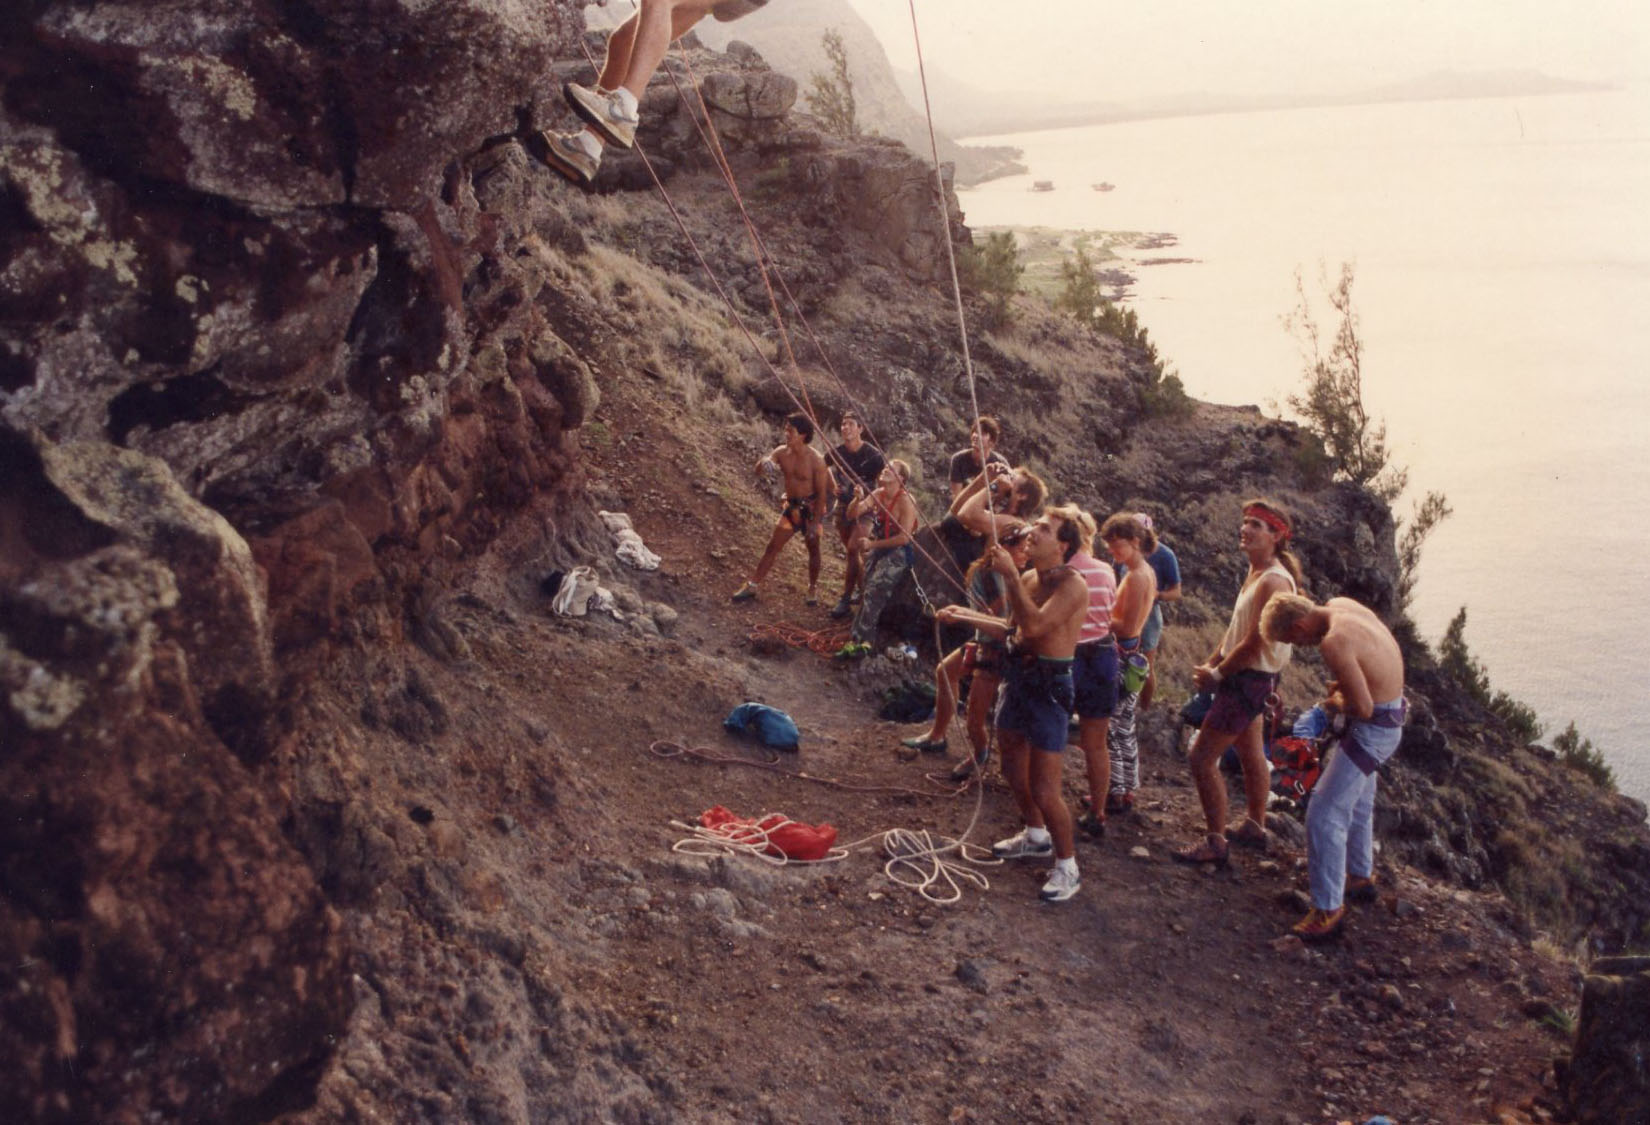 """Busy day at Makapu'u, 1991. """"Makapu'u was a favorite"""" back then and is still one of Hawaii's most popular crags."""